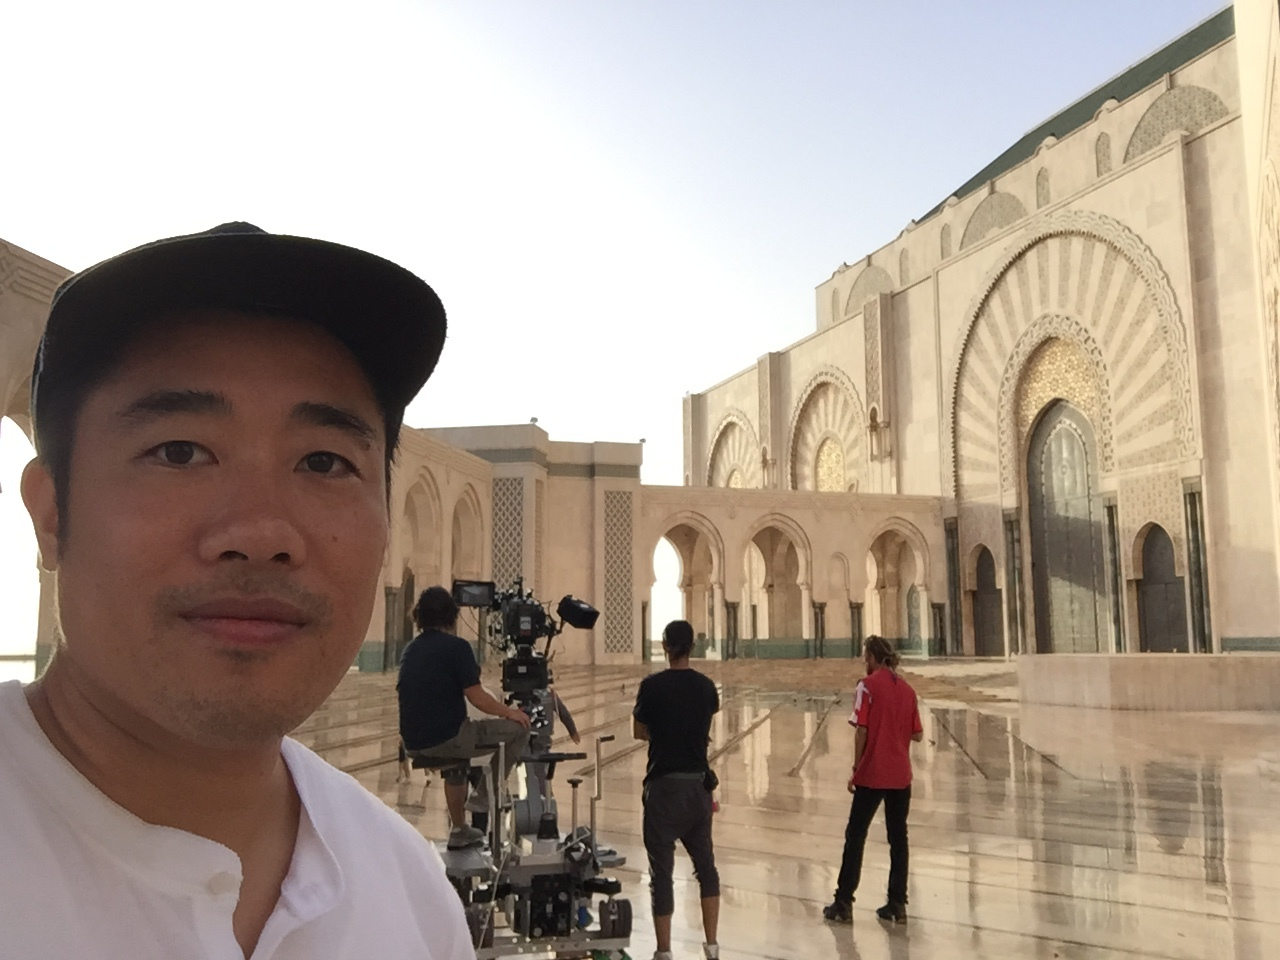 Henry in Morocco producing a spot for Samsung. It was super fun. And you can have fun too!